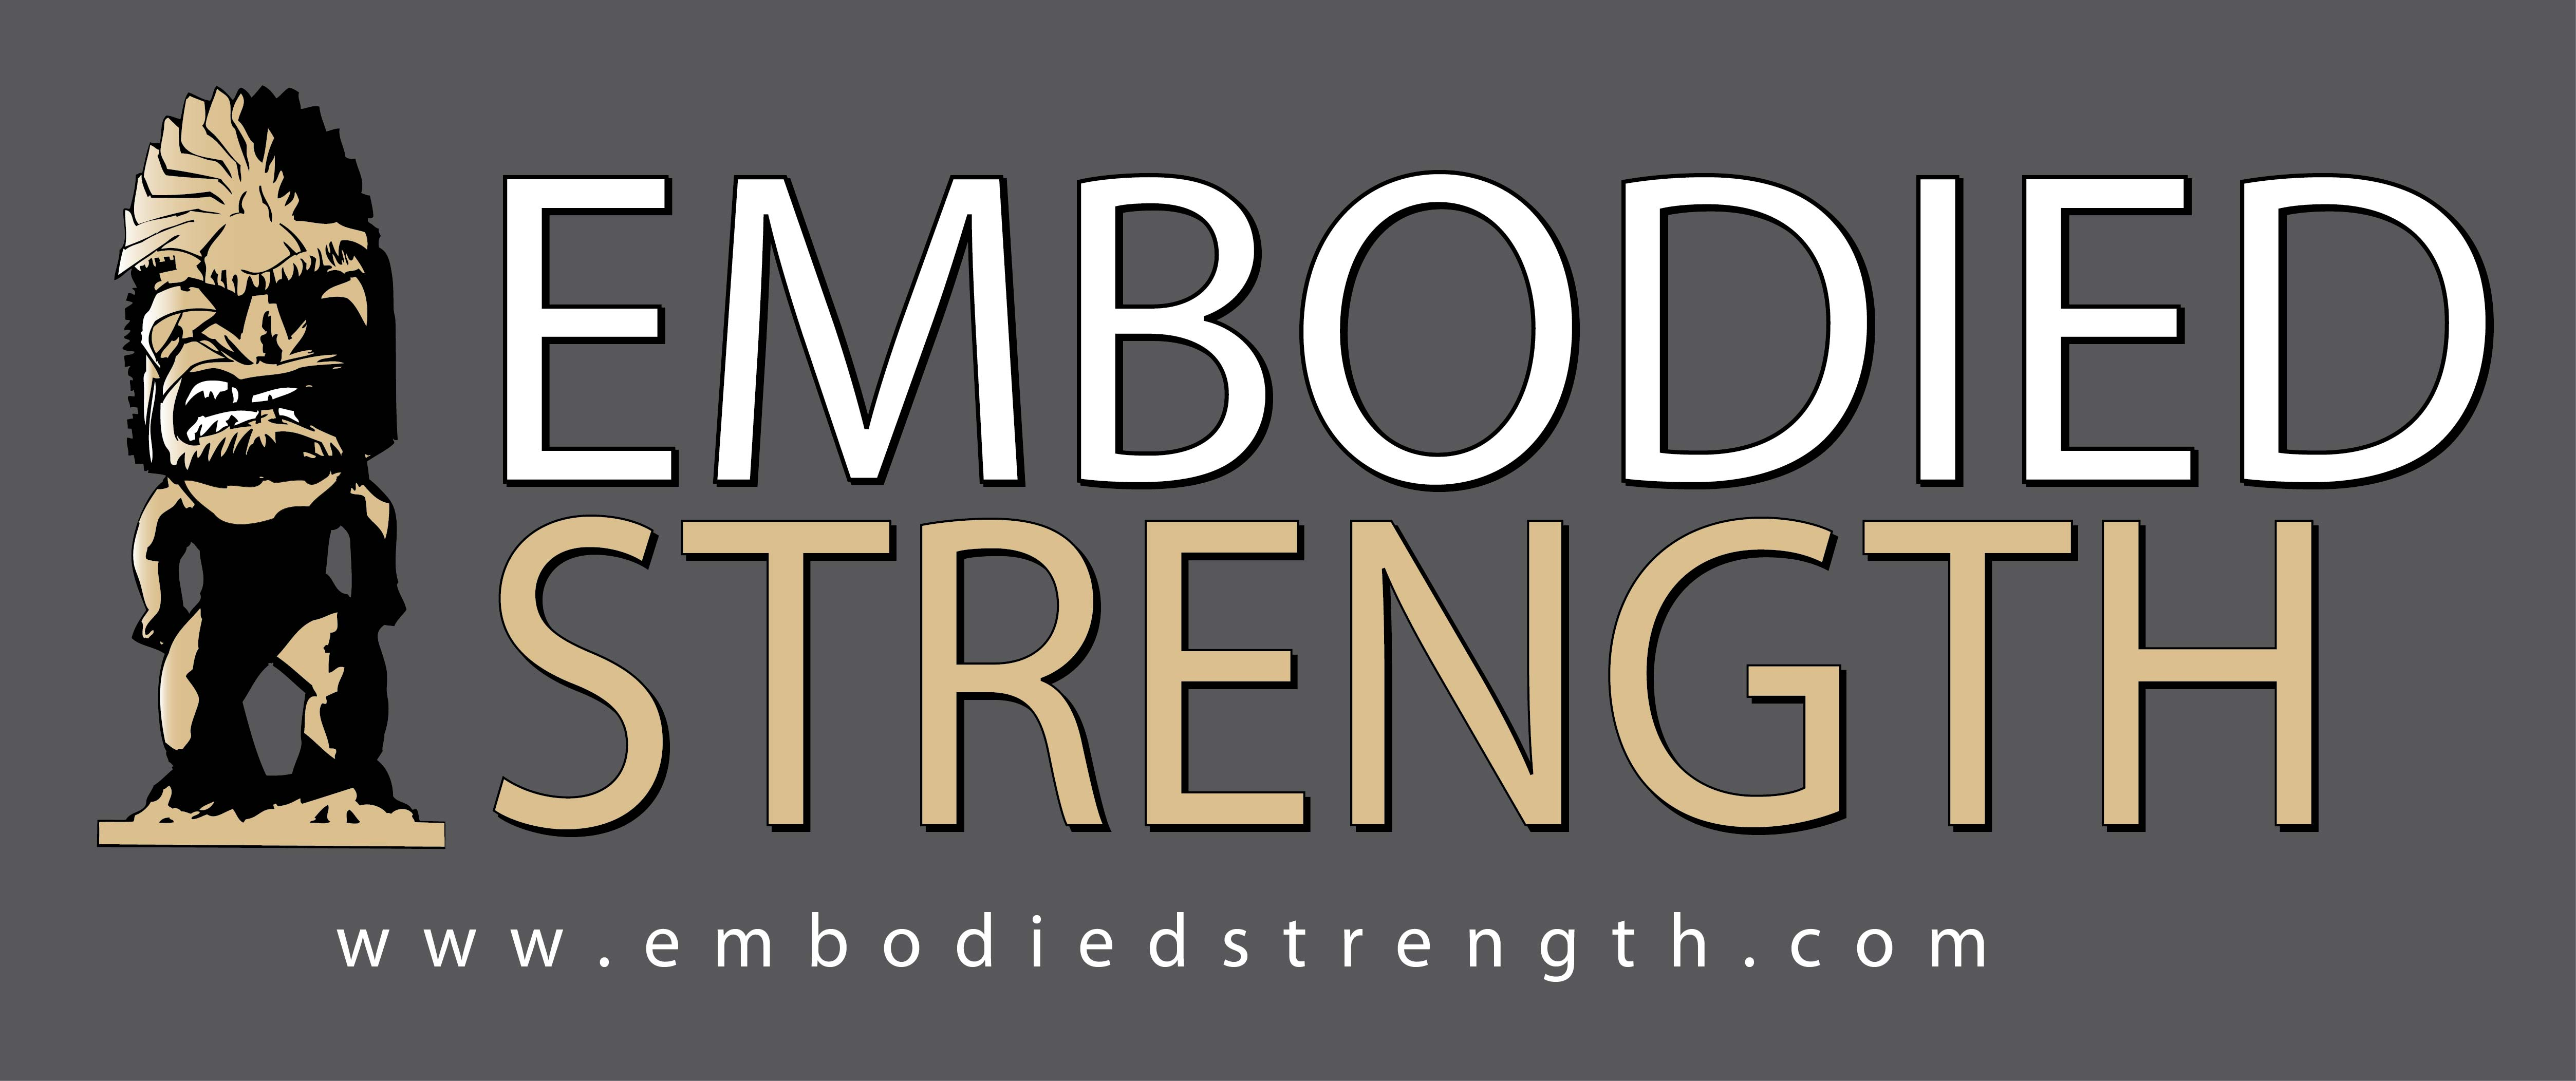 Embodied Strength Logo